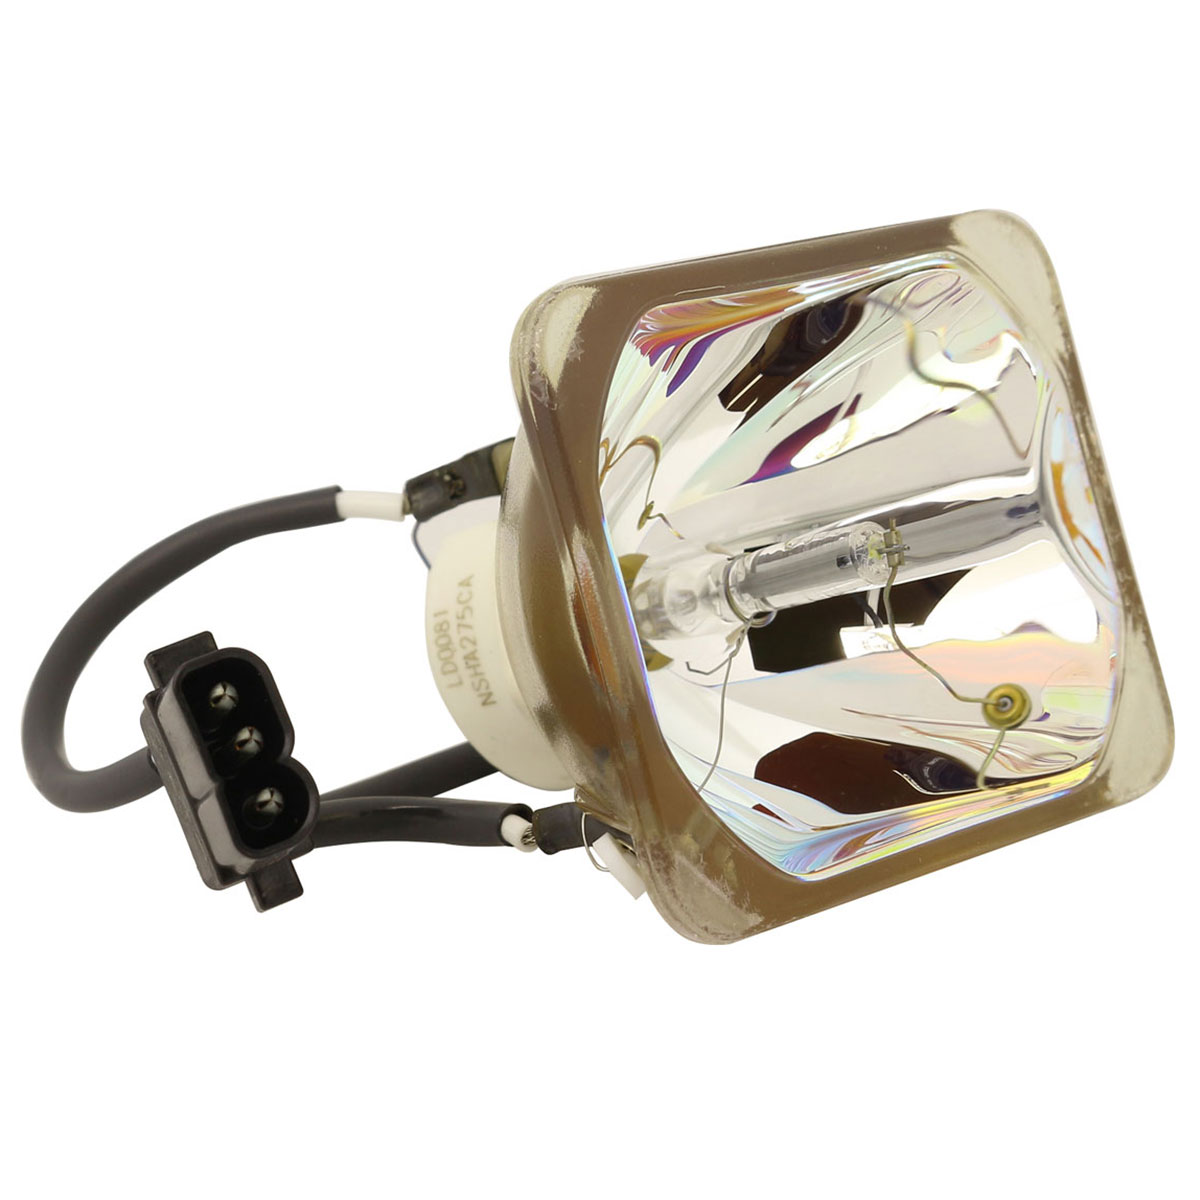 Lutema Platinum Bulb for Canon XEED SX7 Mark II Projector (Lamp Only) - image 3 of 5